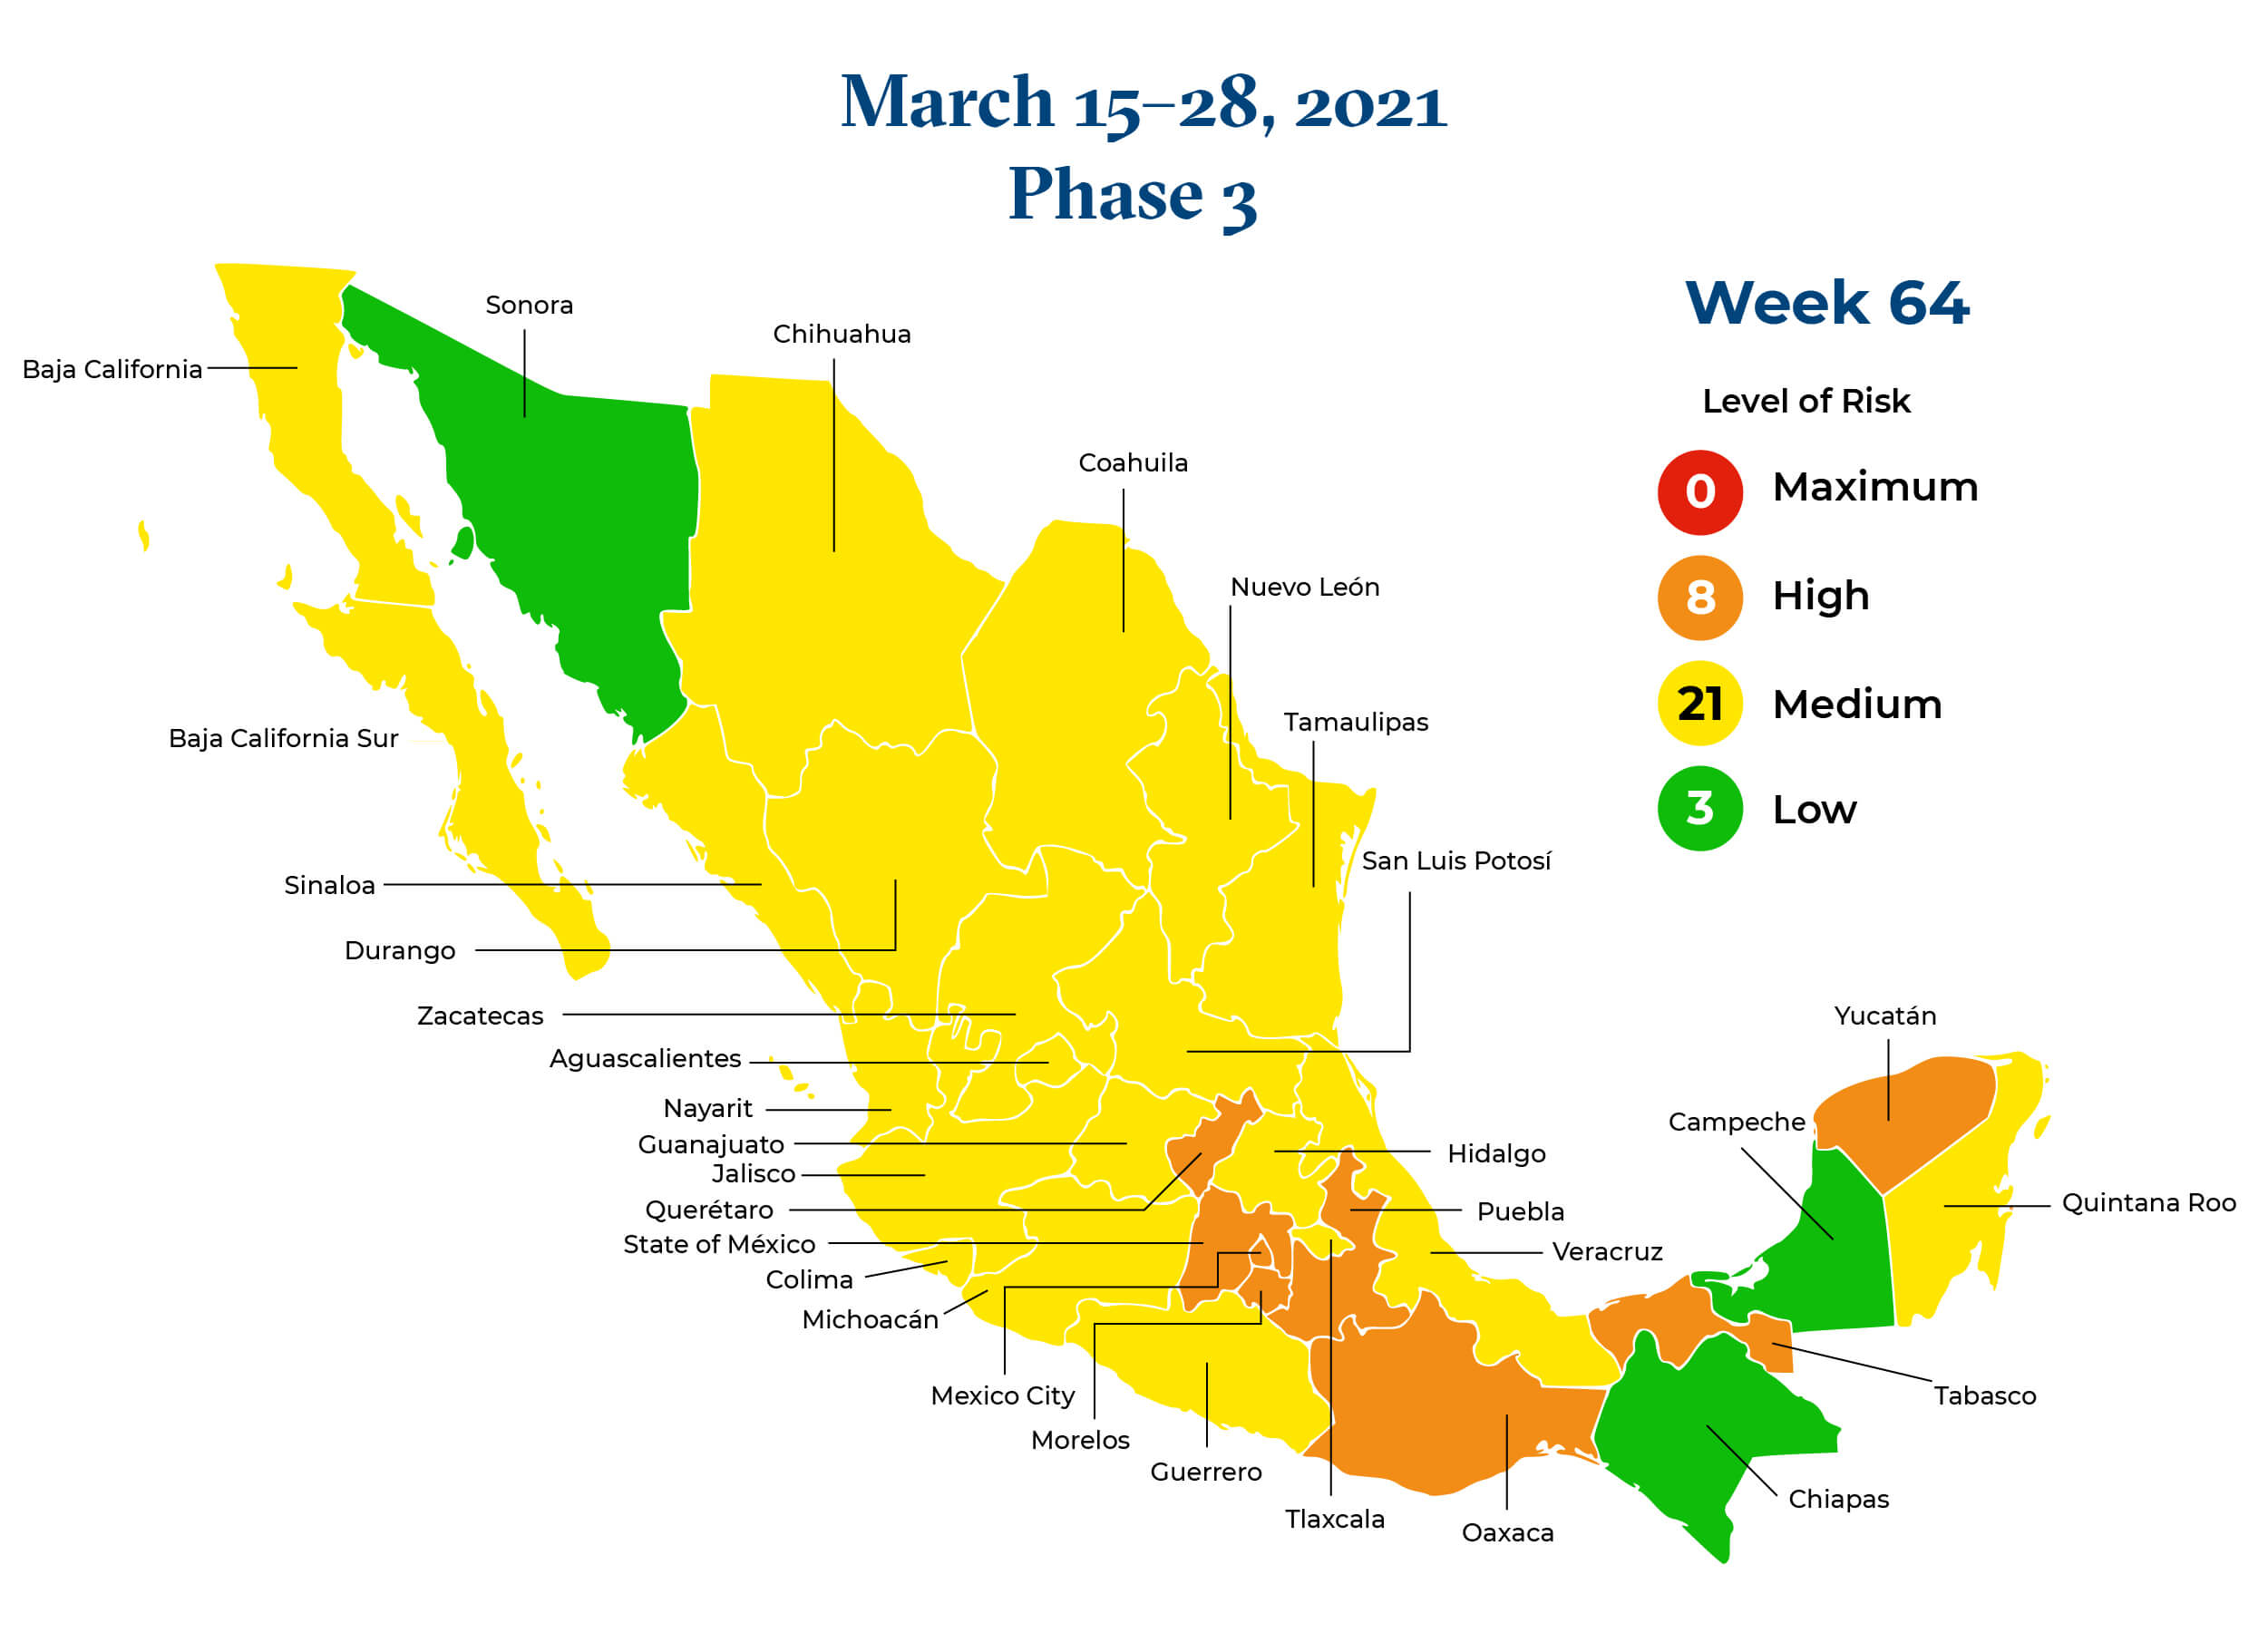 Mexico March 15 2021 to March 28 2021 Phase 3 Map